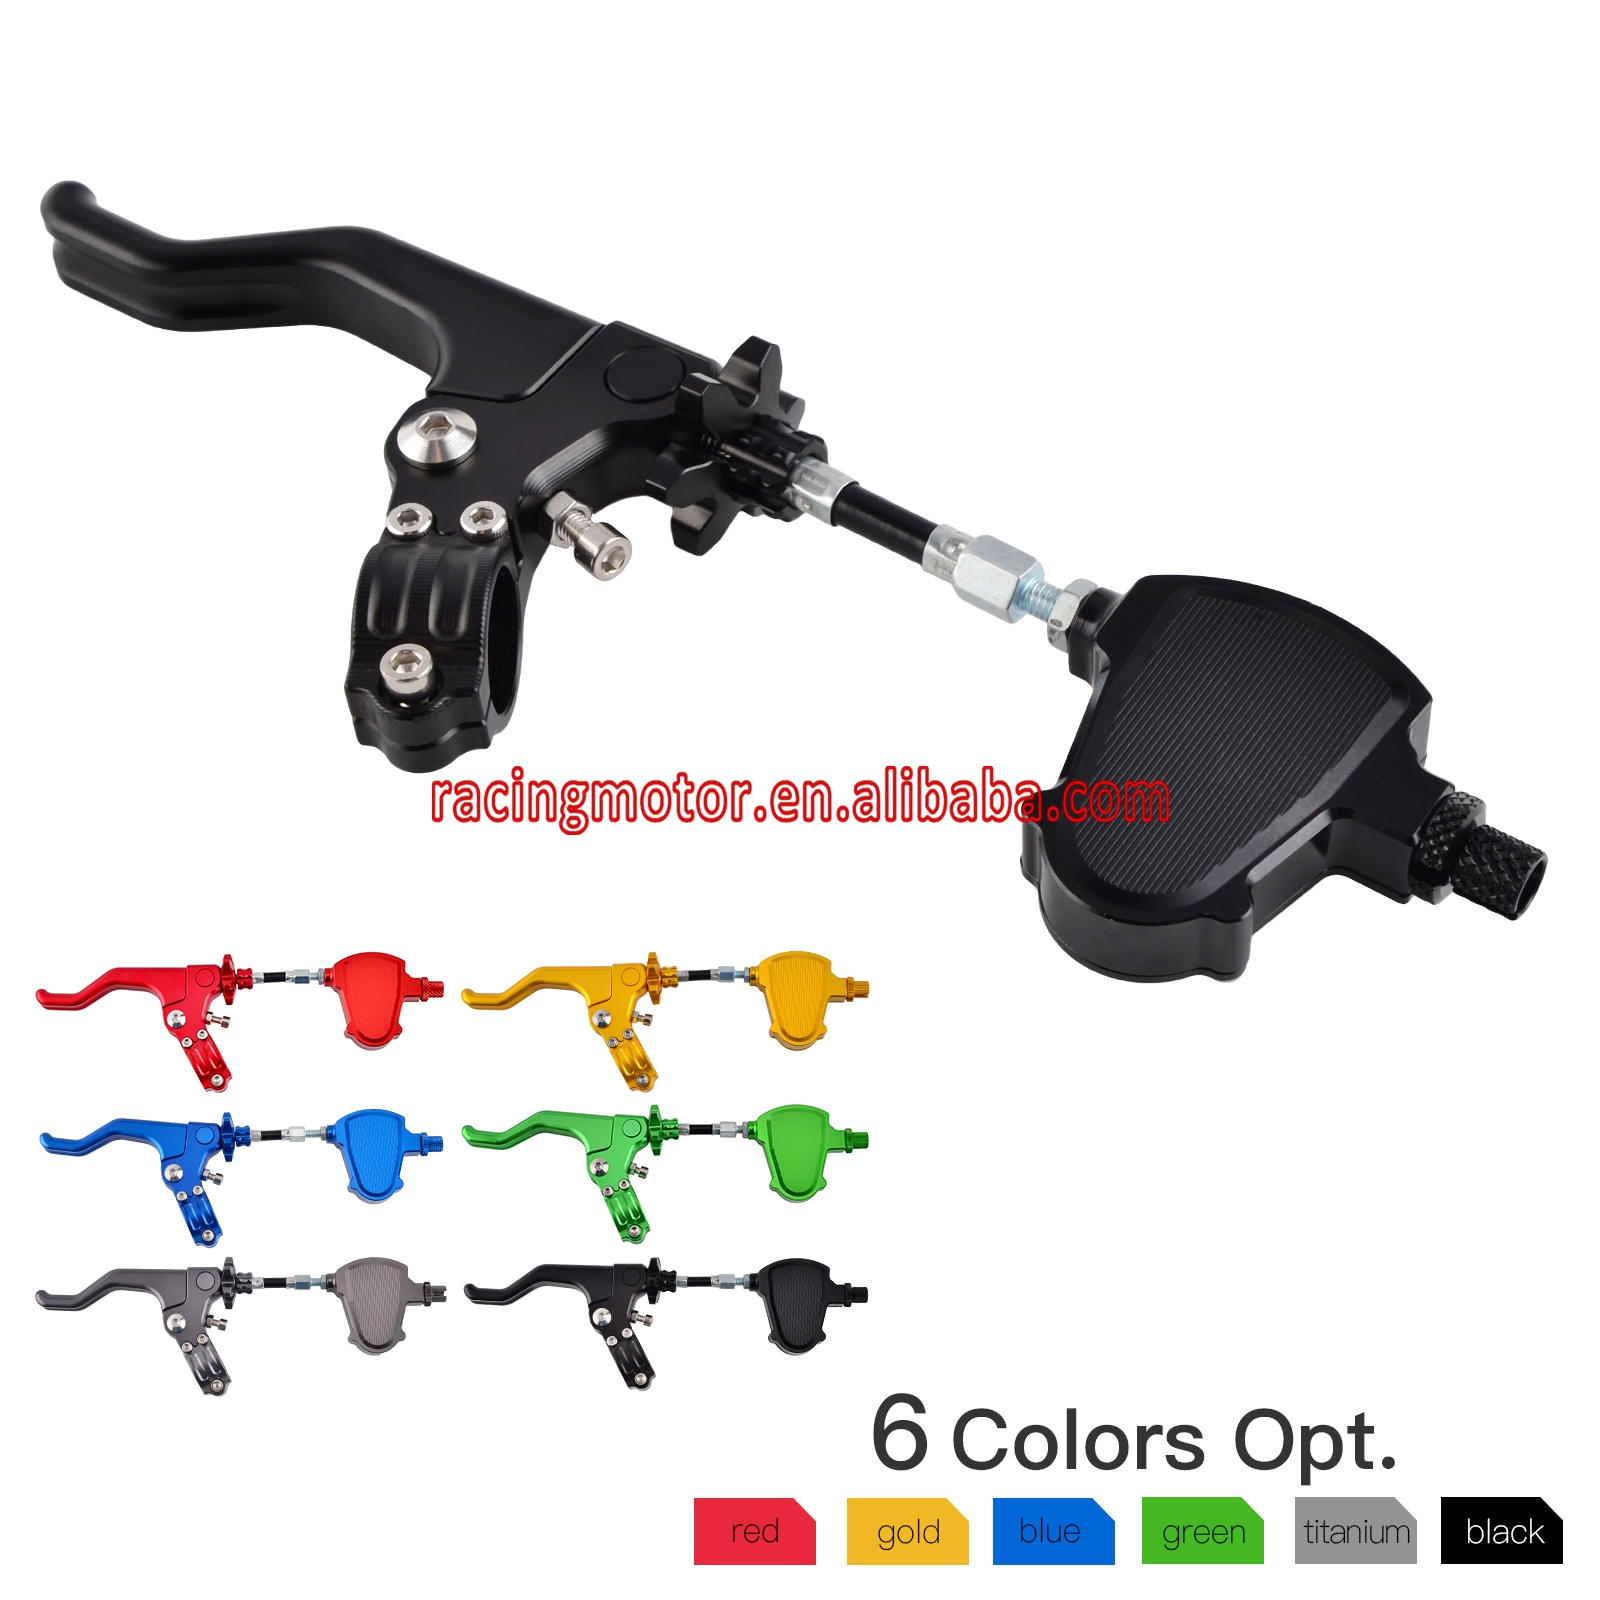 CNC Stunt Clutch Pull Cable Lever Easy System for Suzuki RM85 RM125 RM250 RMZ250 RMZ450 DRZ400 DR-Z400 DR250R 7 8 22mm gold handlebar handle tubes fat bar for suzuki dirt pit bike motorcycle rm125 rm250 rmz250 rmz450 rmx250 dr250 drz400